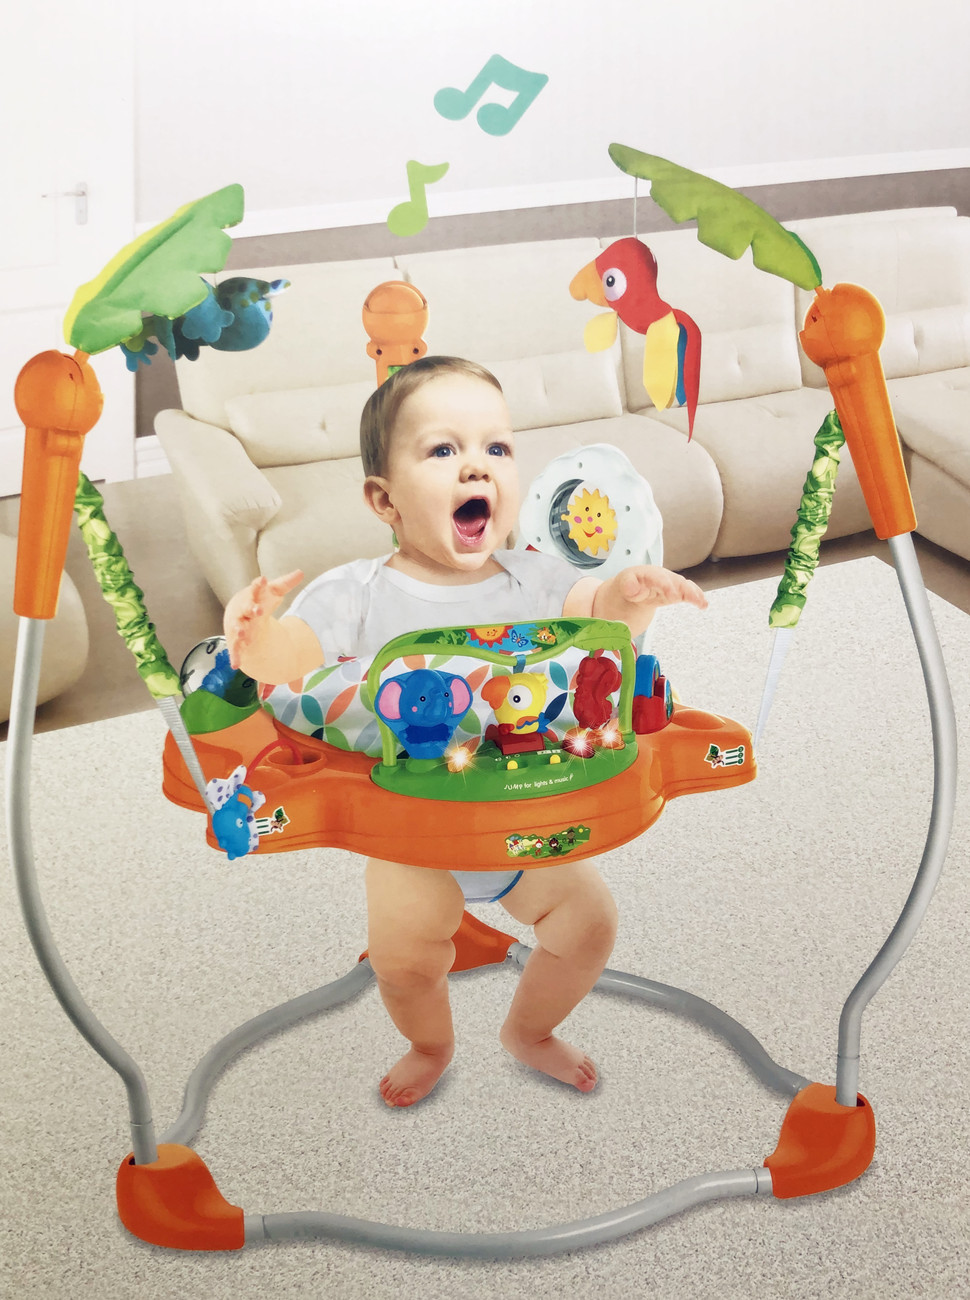 H8244f8ed943643aea7e1c46d6217fb6e9 Multifunctional Electric Baby Jumper Walker Cradle Tropical Forest Baby Swing Rocking Body Child bouncer Swing Fitness Chiar